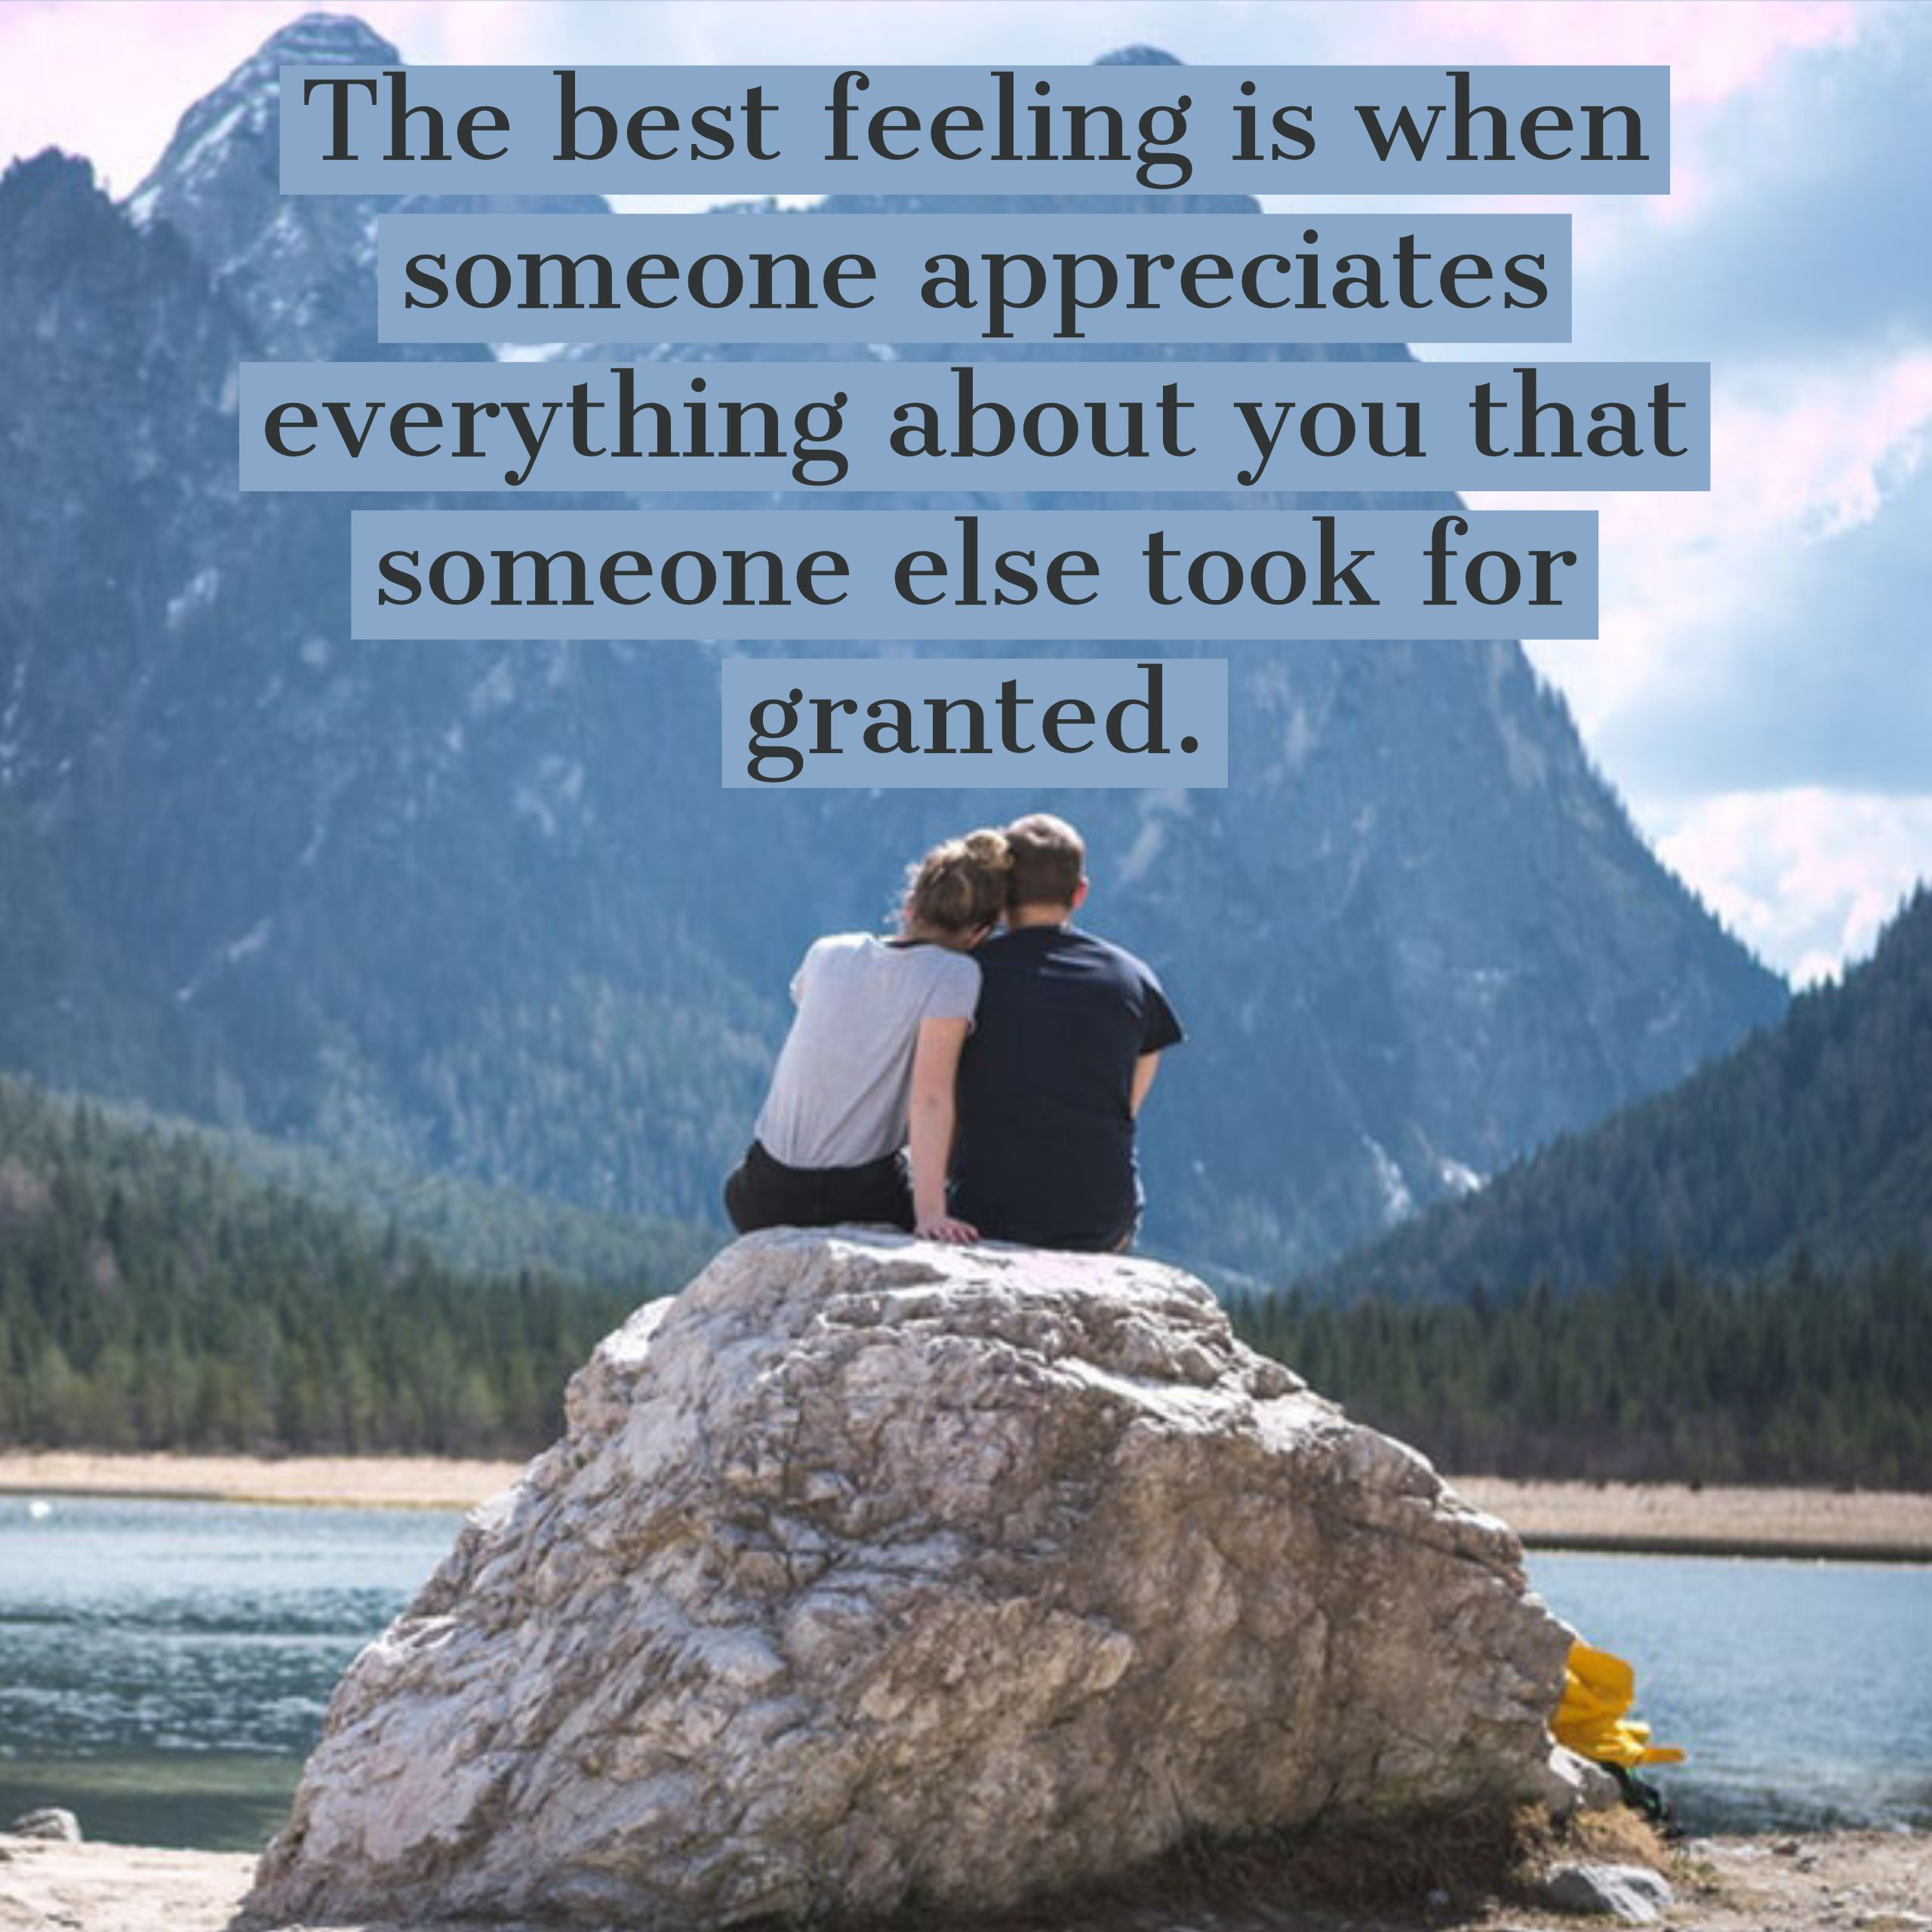 The best feeling is when someone appreciated everything about you